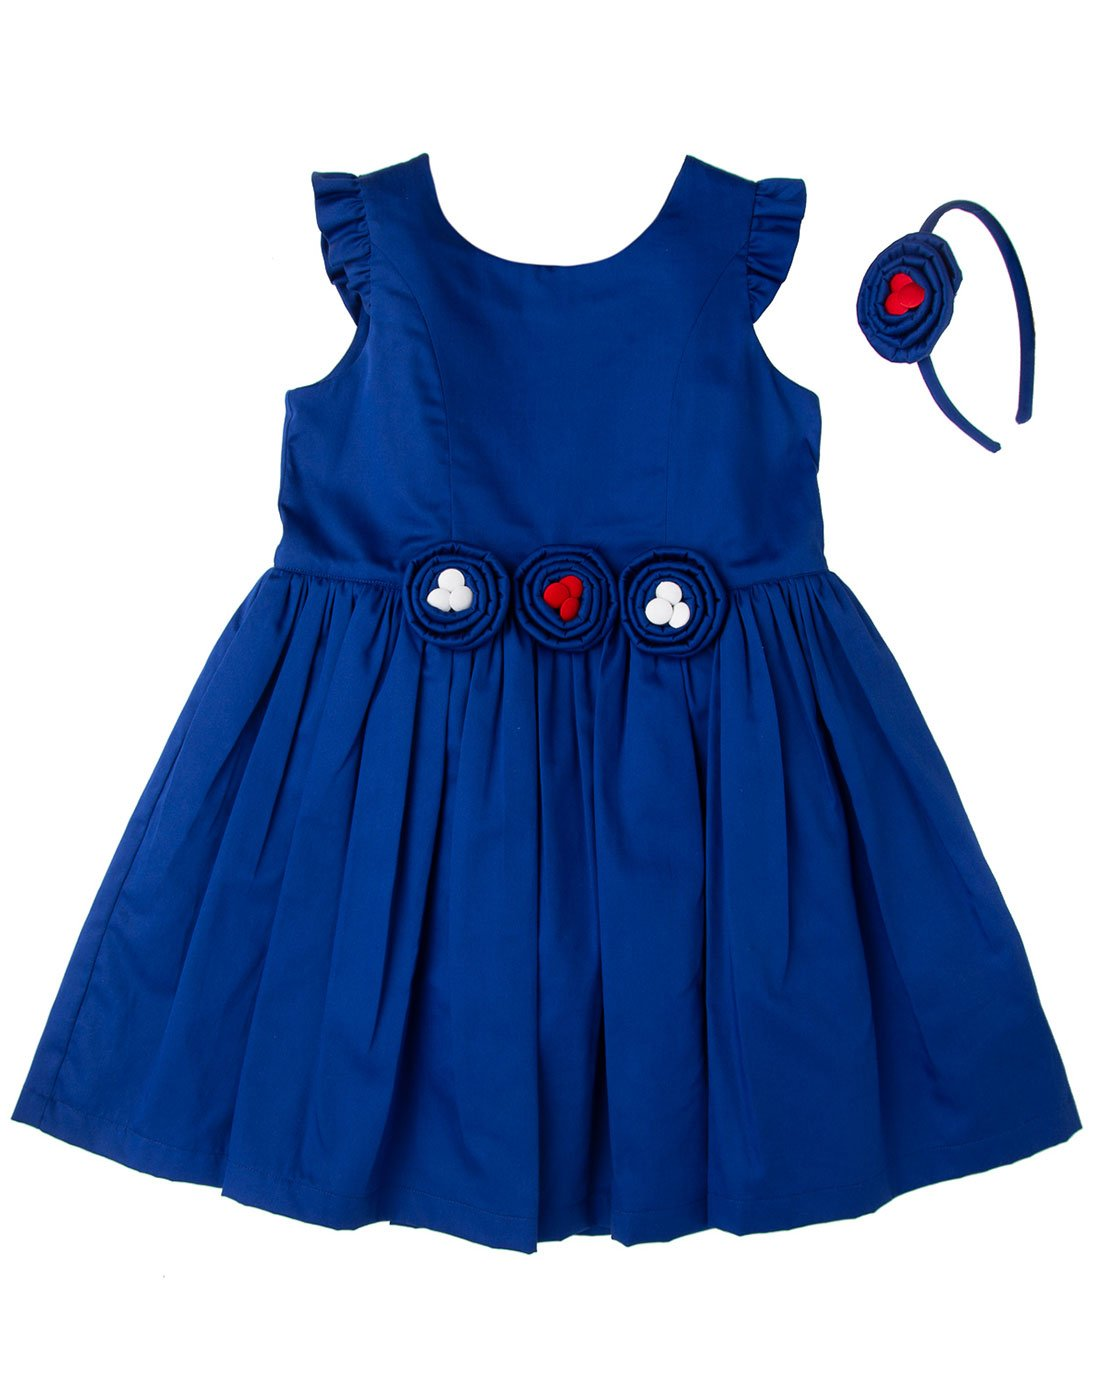 Royal Blue Rosset Dress